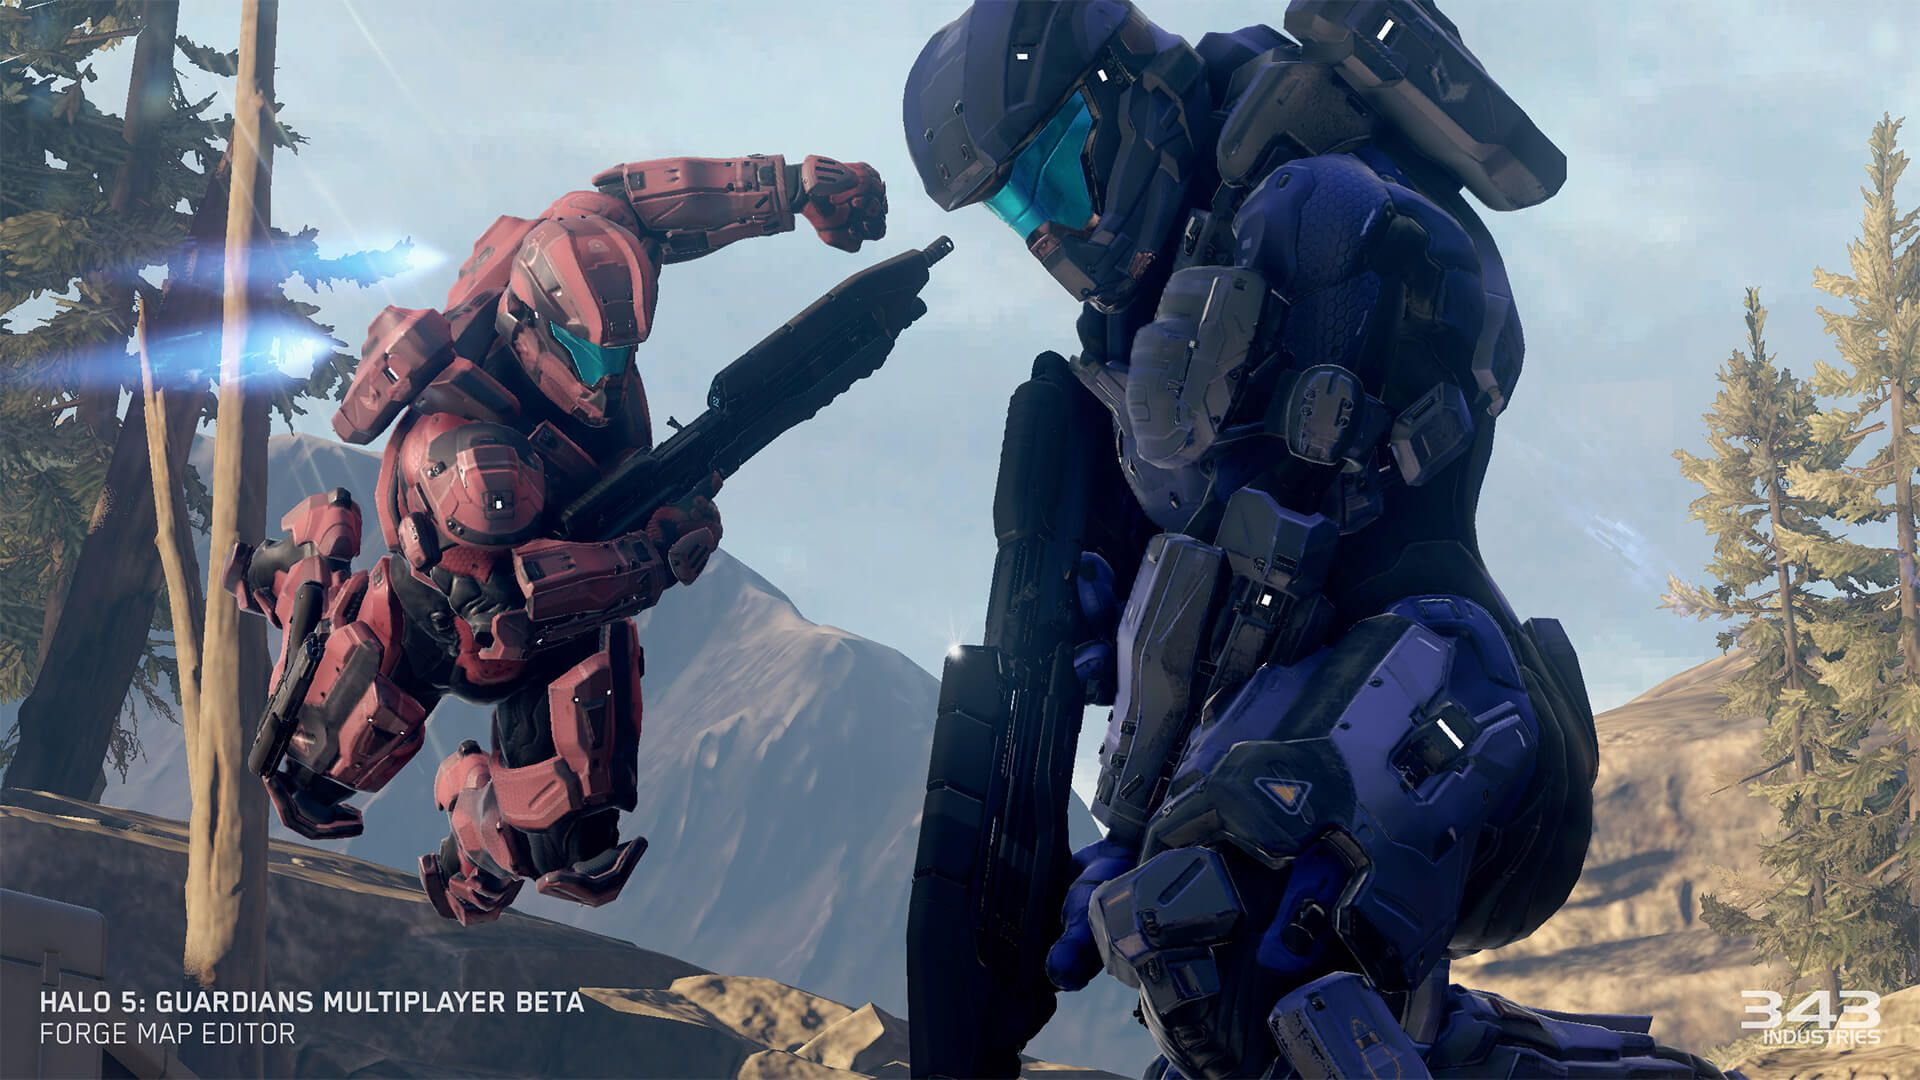 Halo 5: Guardians Forge Mode Tools Arriving on PCs for Free